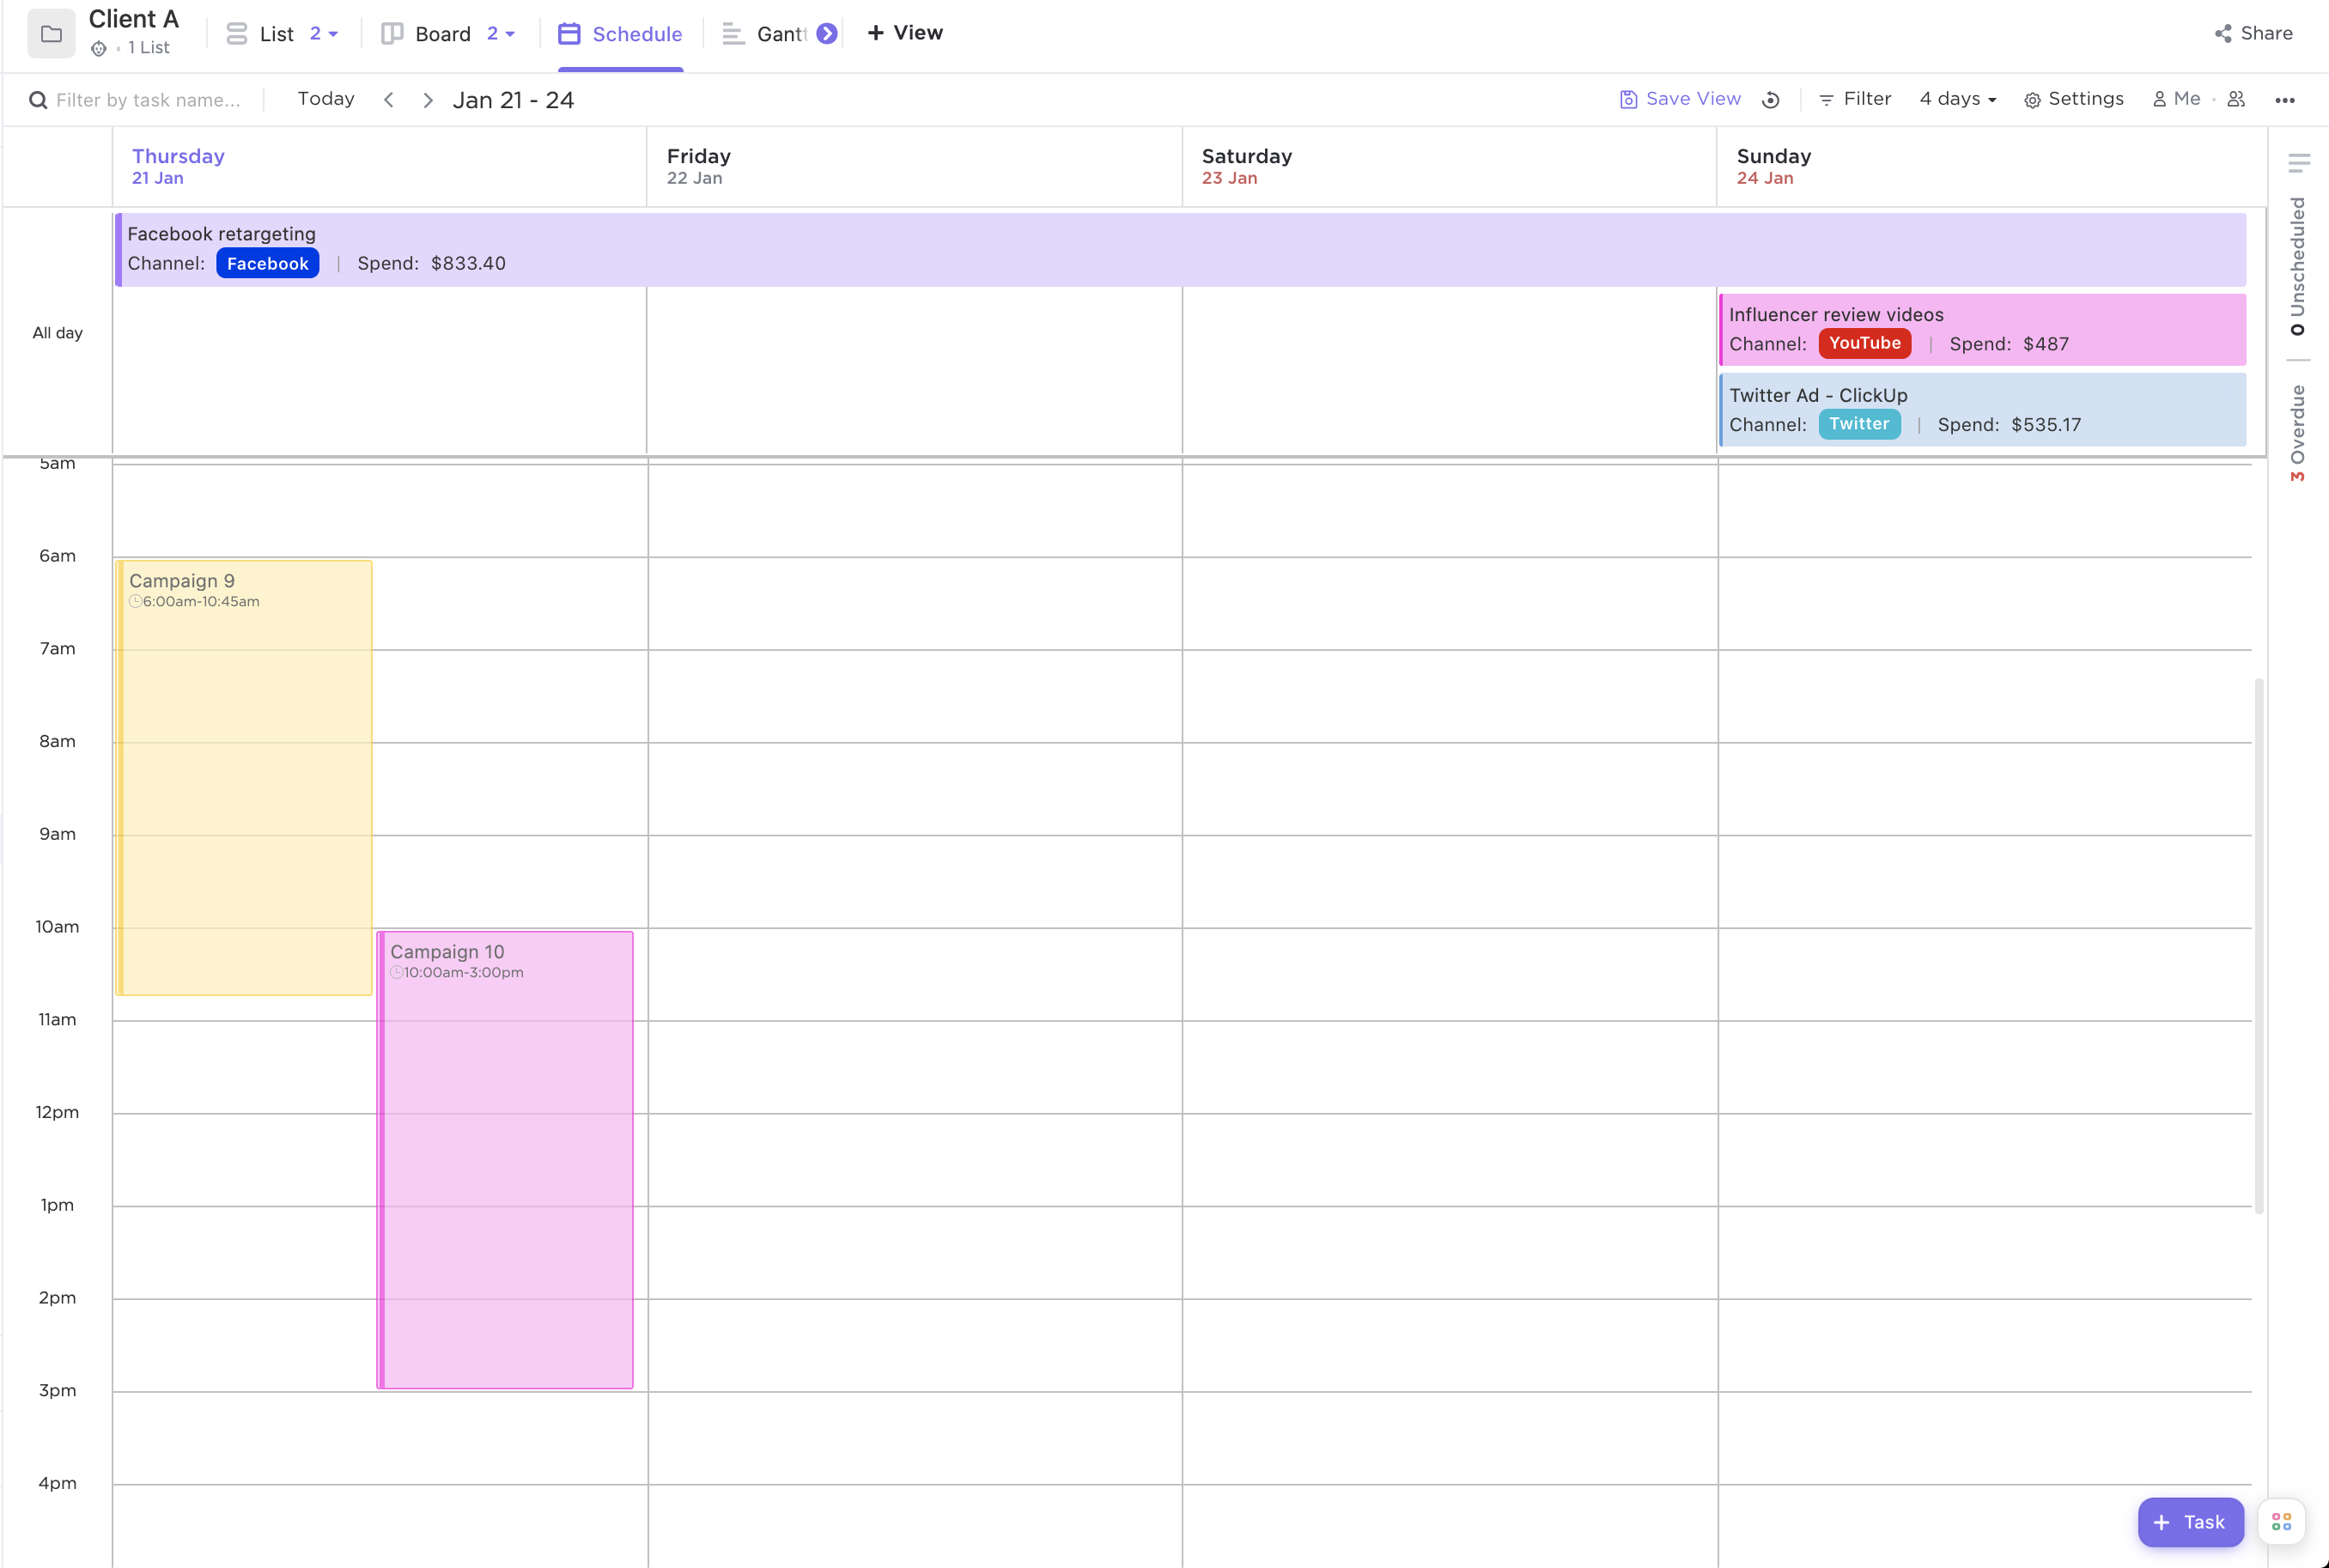 Screenshot of Calendar view by rolling 4-day